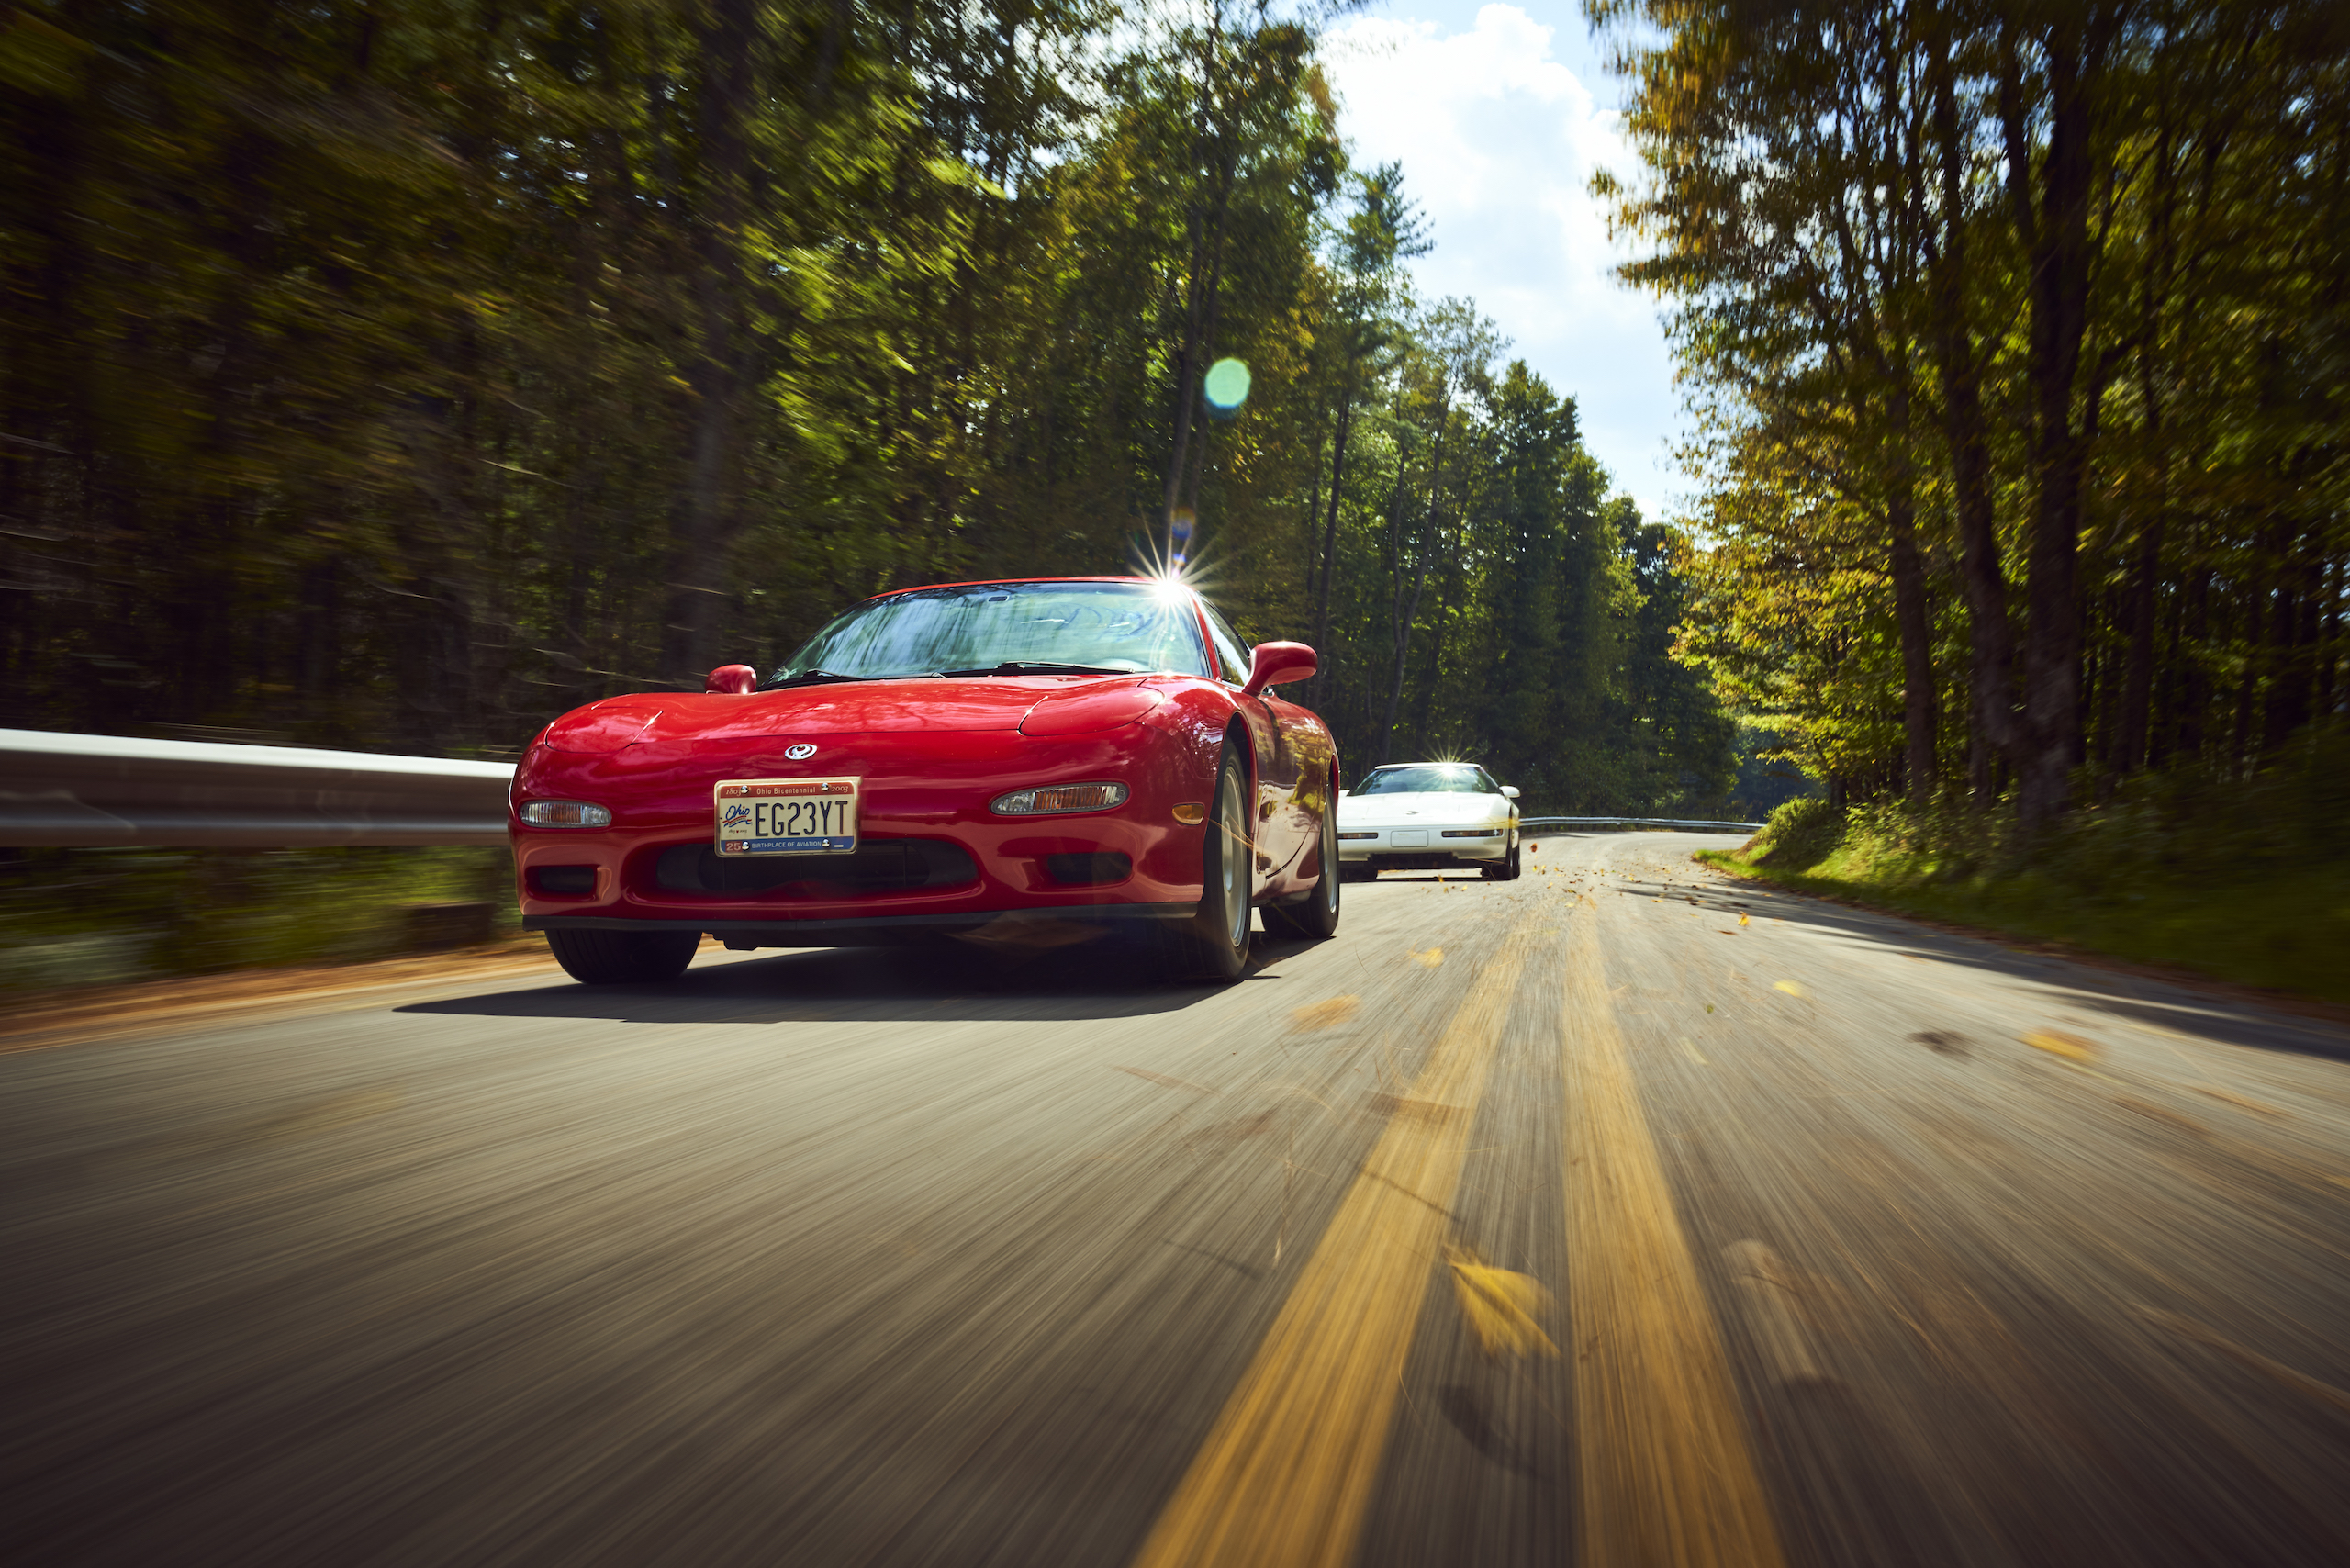 Mazda RX-7 with C4 Corvette trailing dynamic road action front